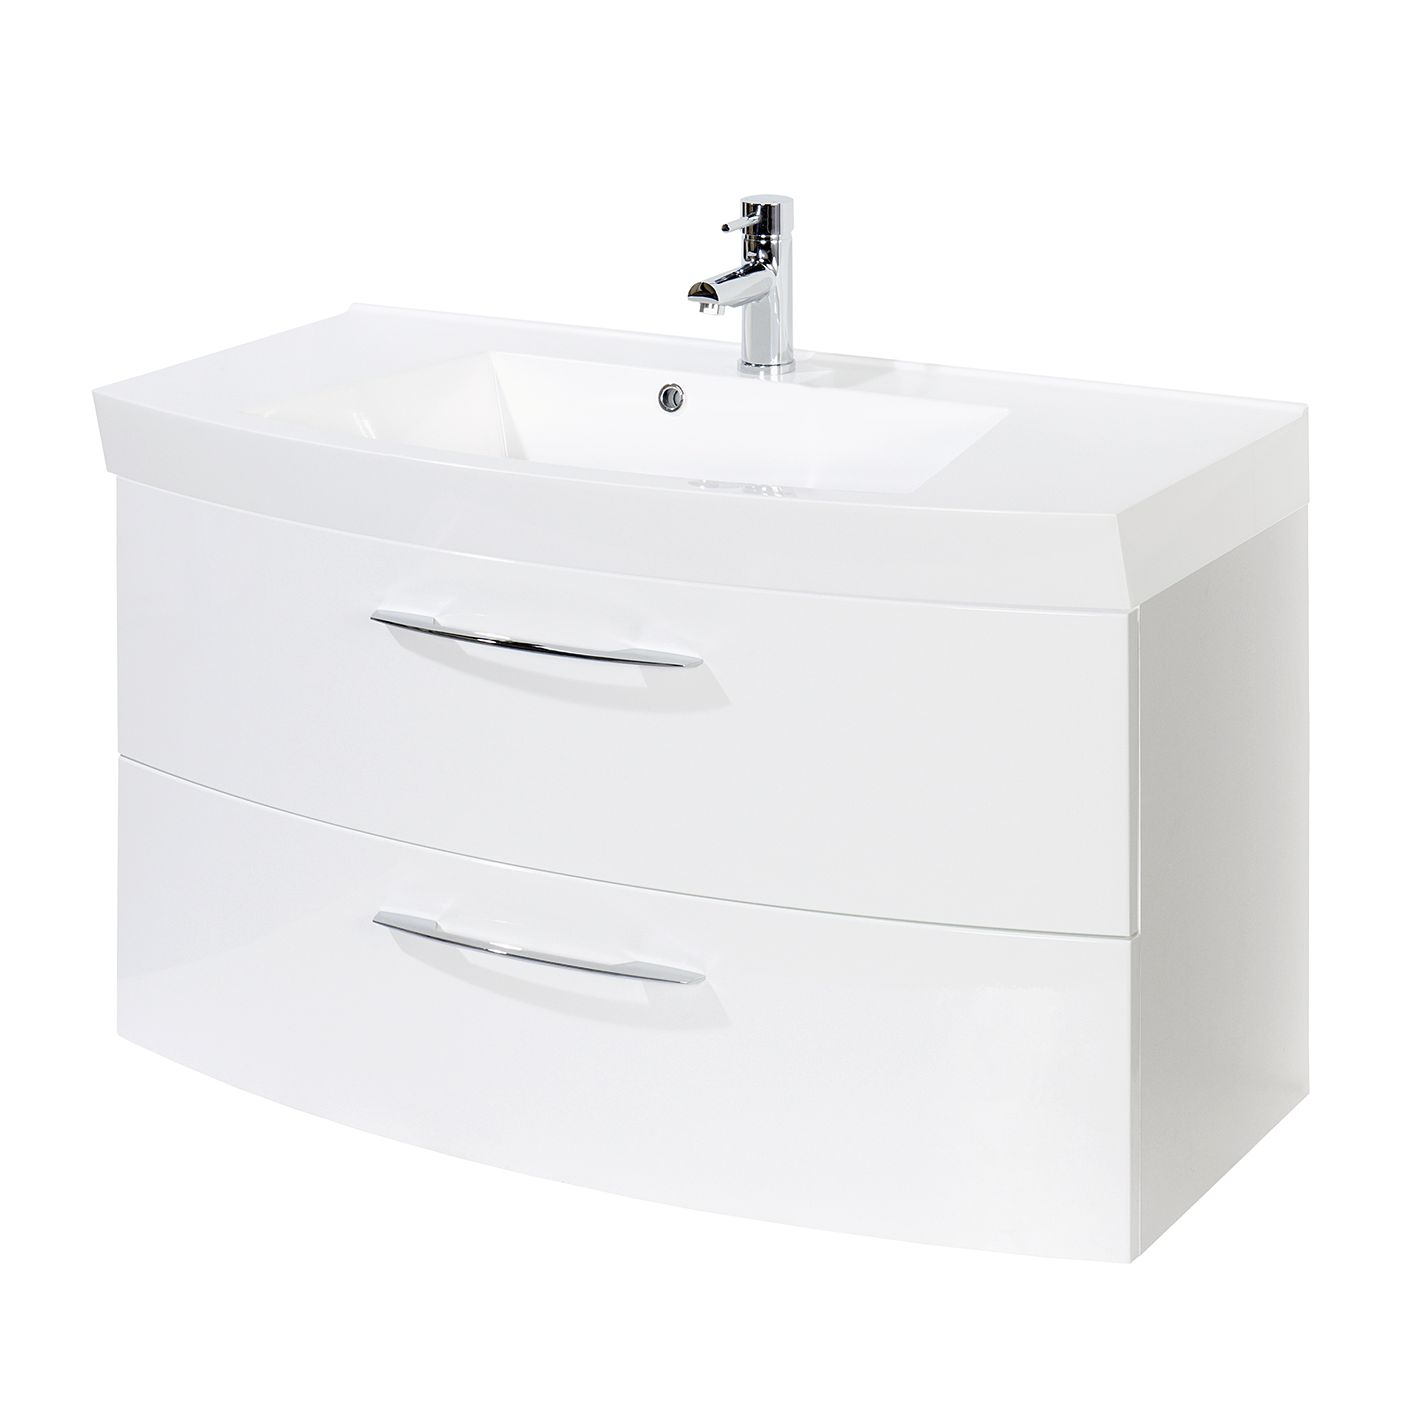 Mobile lavabo Strahan - Bianco, Giessbach